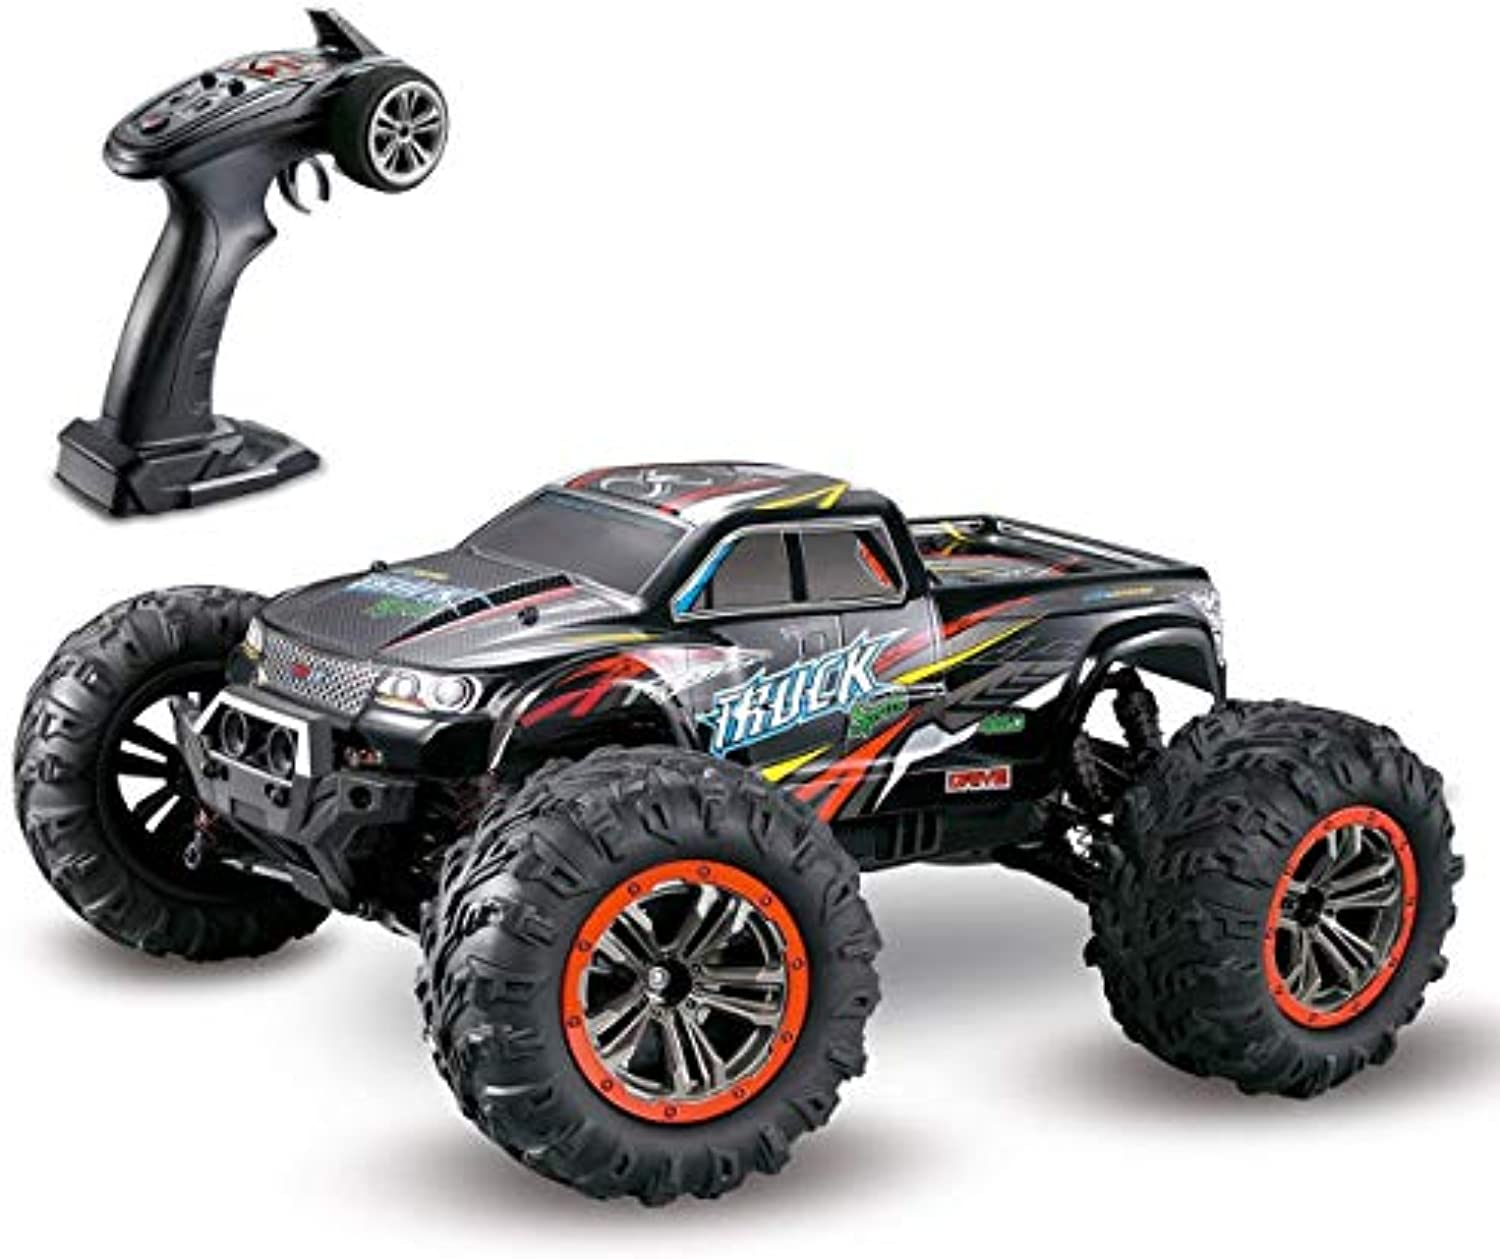 LSQR Groe Gre 1 10 Scale High Speed 46km h 2.4Ghz Fernbedienung 4WD Off Road Truck, Radio Controlled Off-Road RC Electronic Monster Truck RC RTR Hobby Cross-Country Toy Car